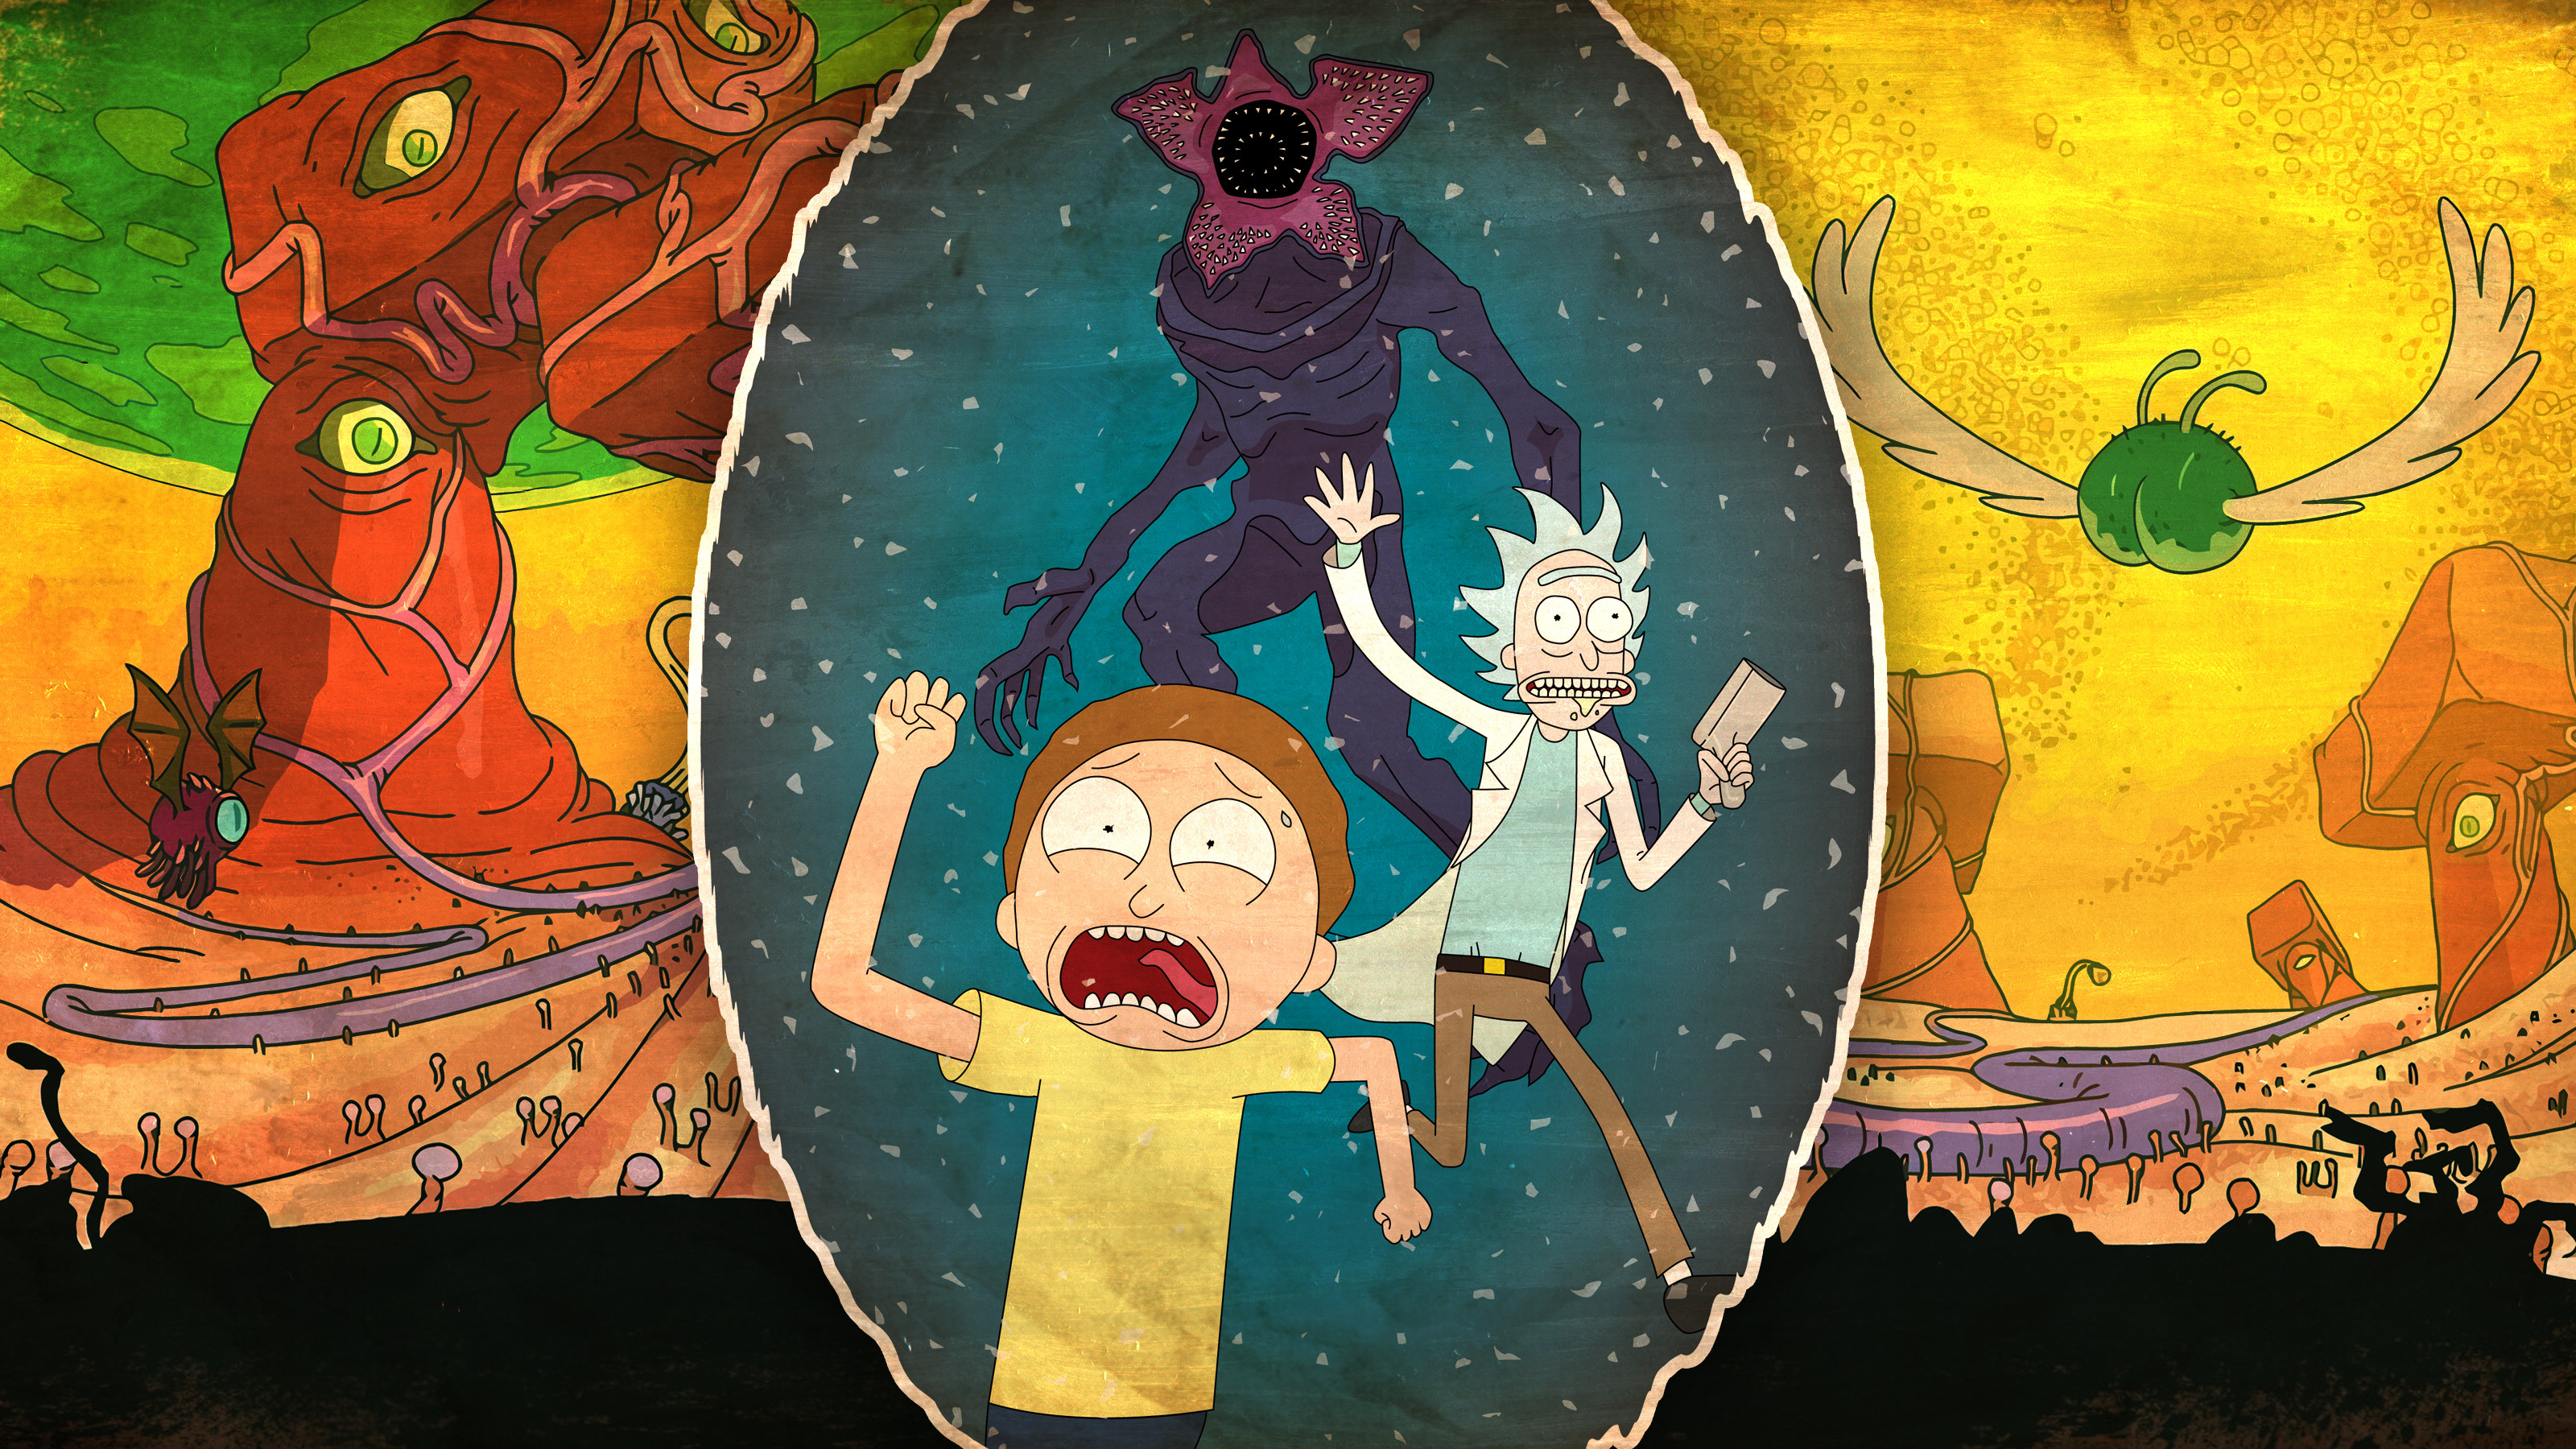 2560x1440 Rick And Morty 2017 1440p Resolution Wallpaper Hd